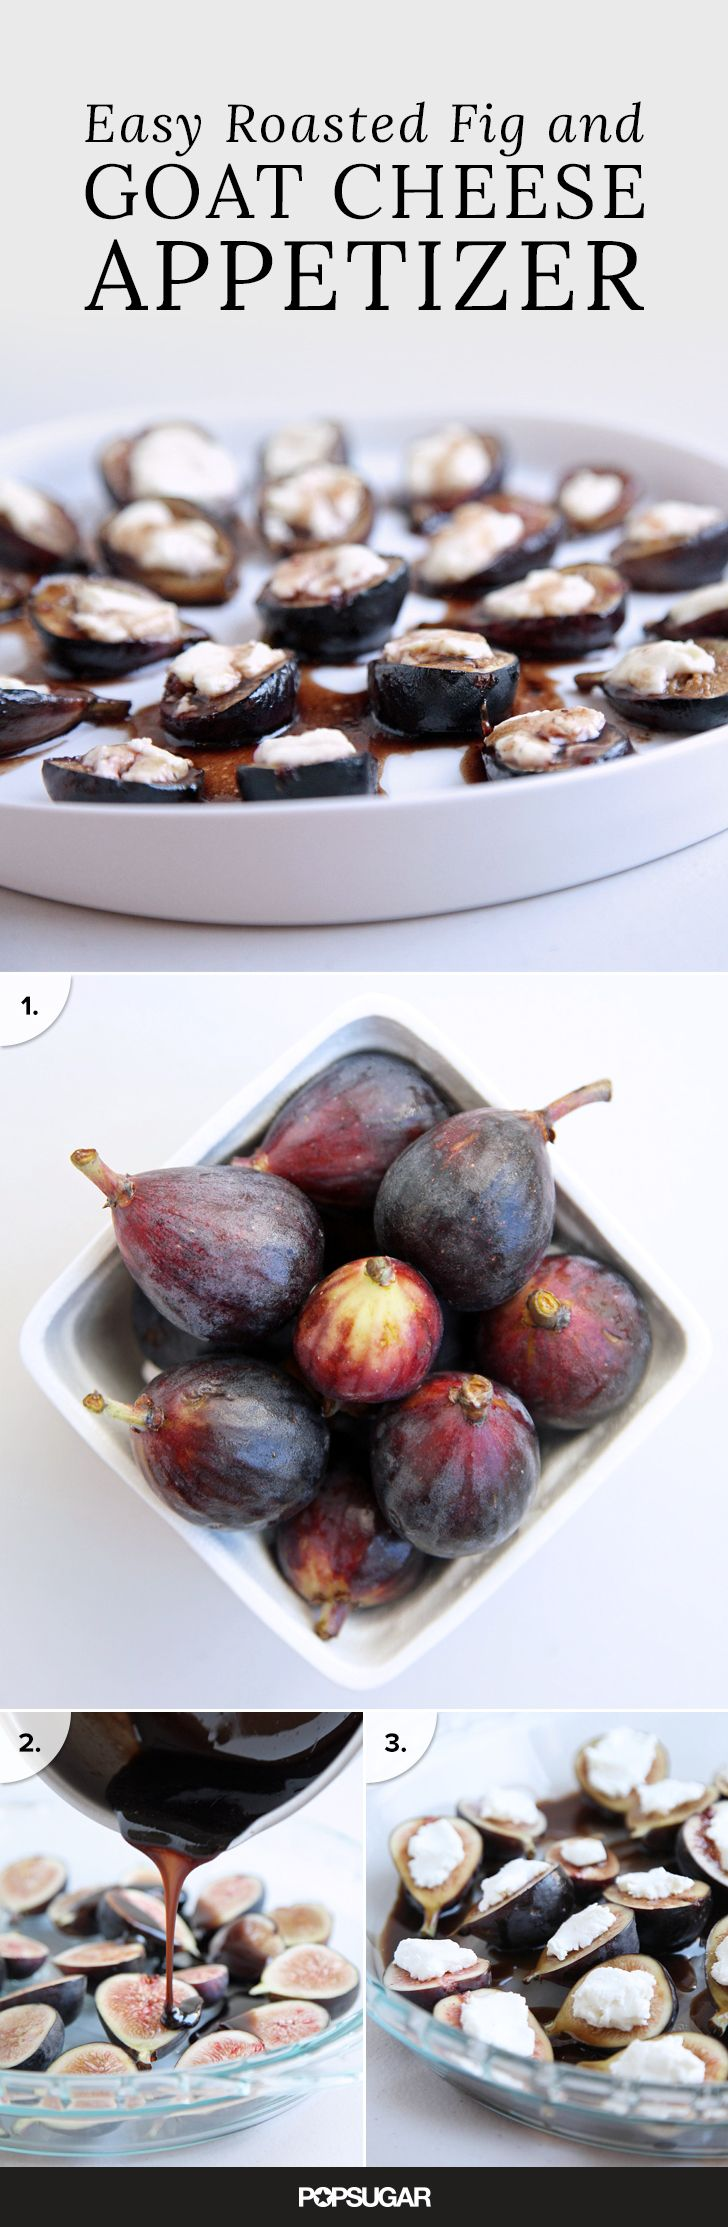 Black Mission figs, balsamic vinegar, and fresh goat cheese star in this appetizer that only takes 20 minutes to make!